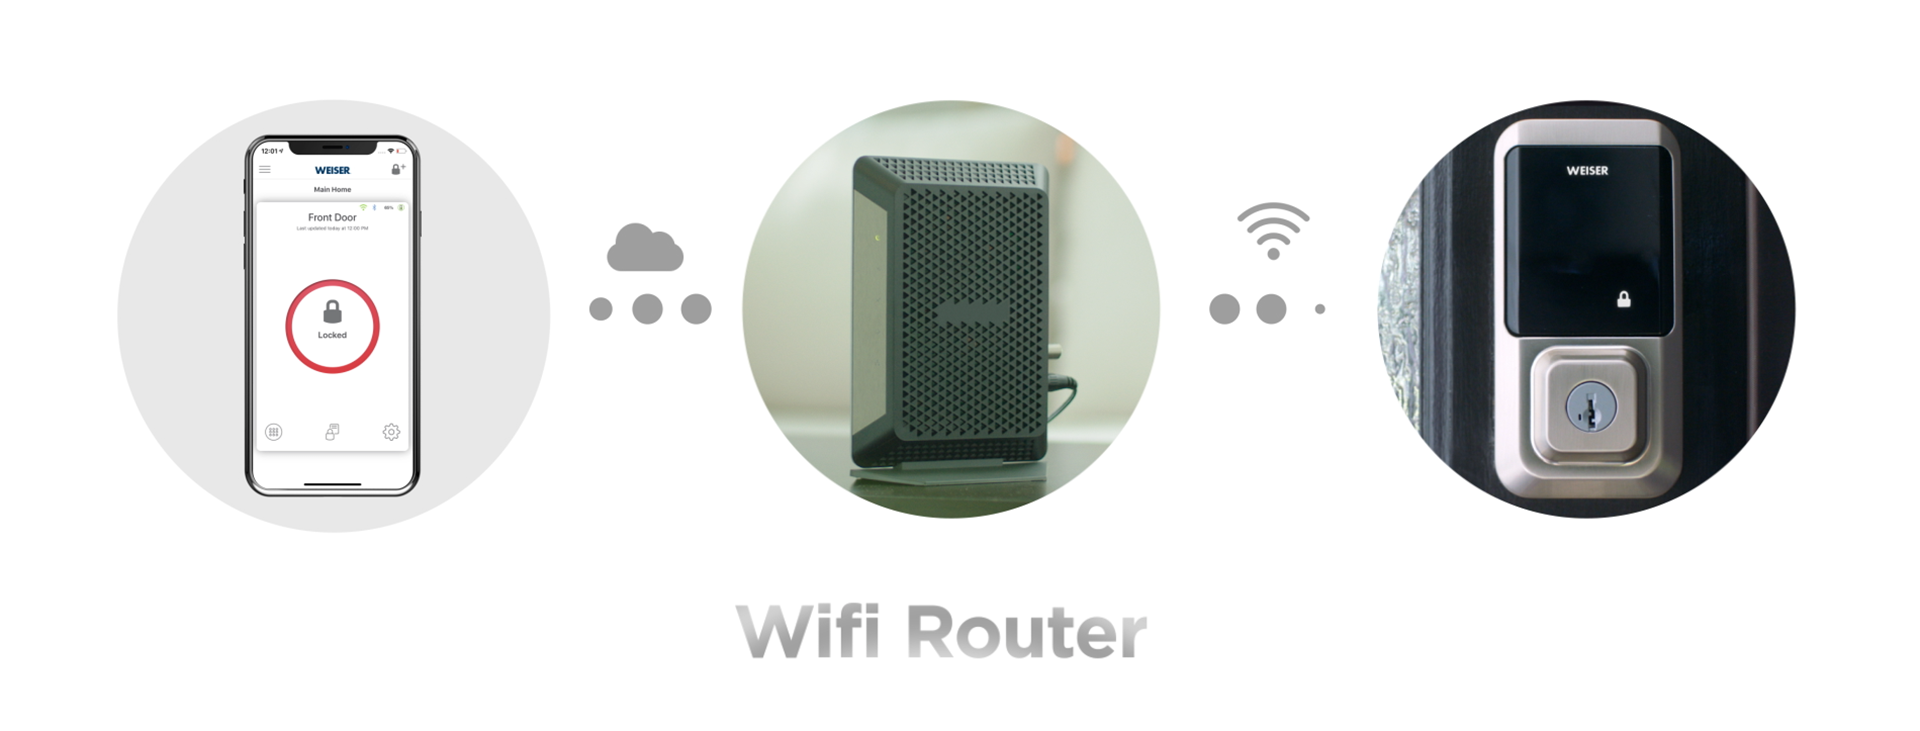 Phone Router Easy English